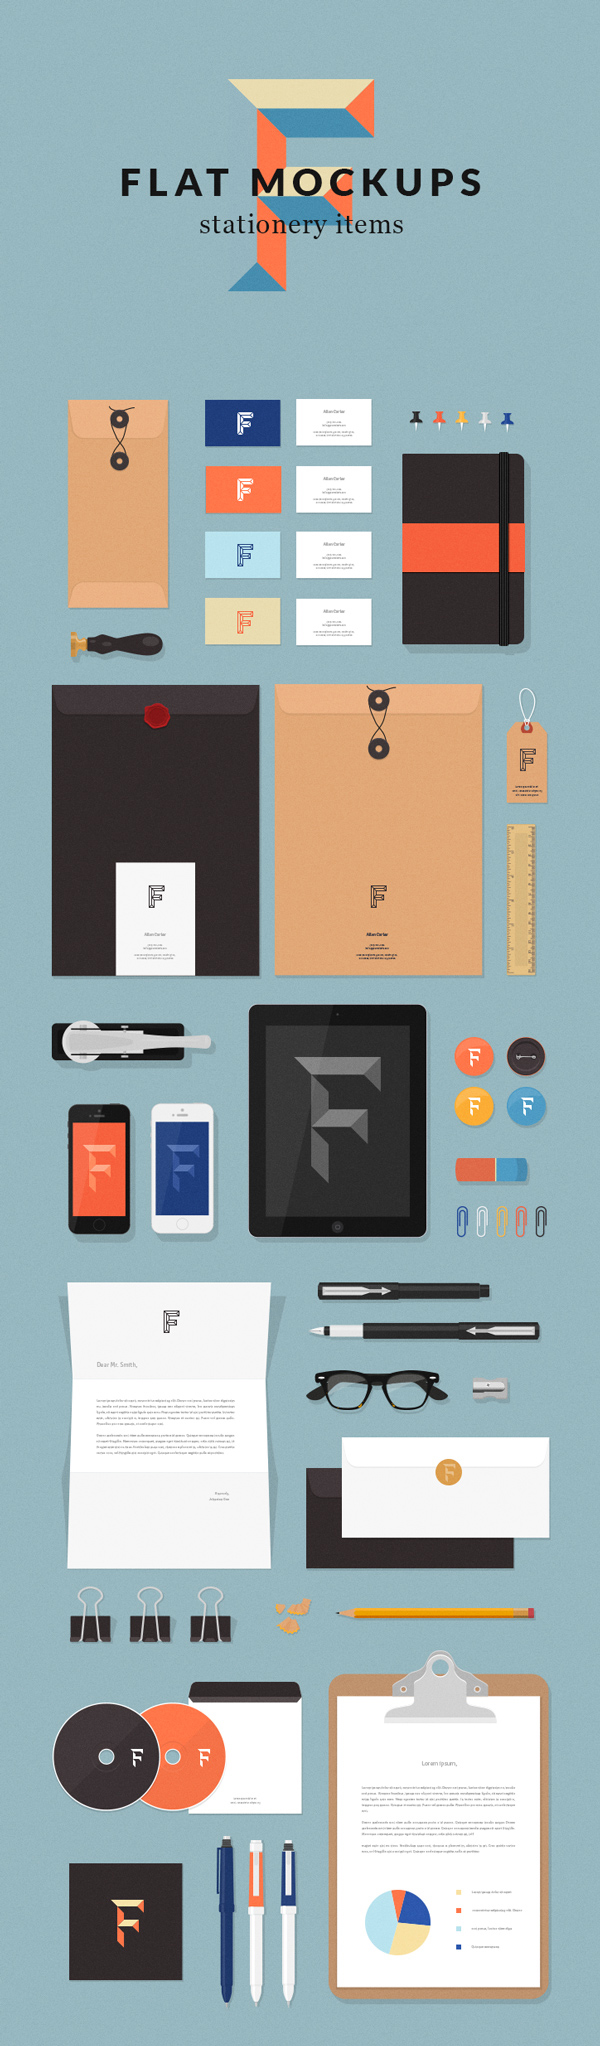 Free Flat Stationery MockUp Items